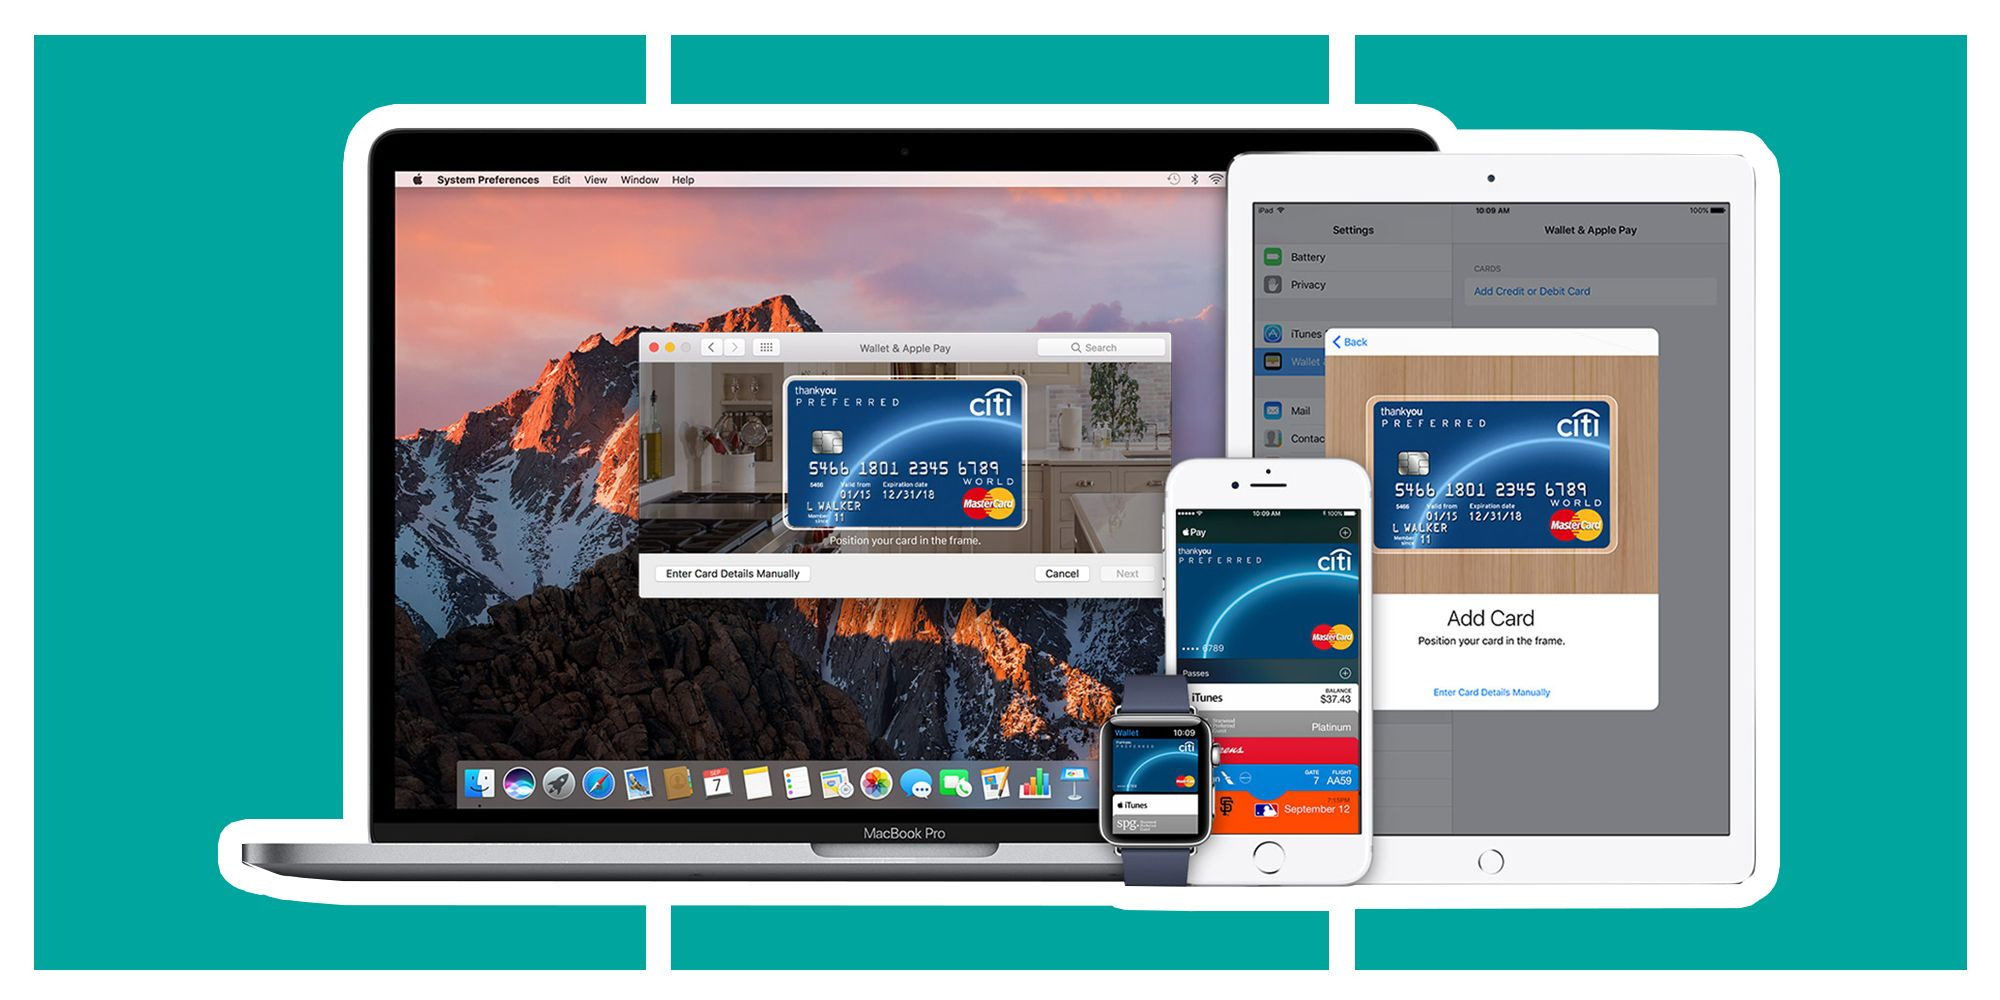 How to Set Up & Use Apple Pay on Your iPhone How to Use Apple Pay